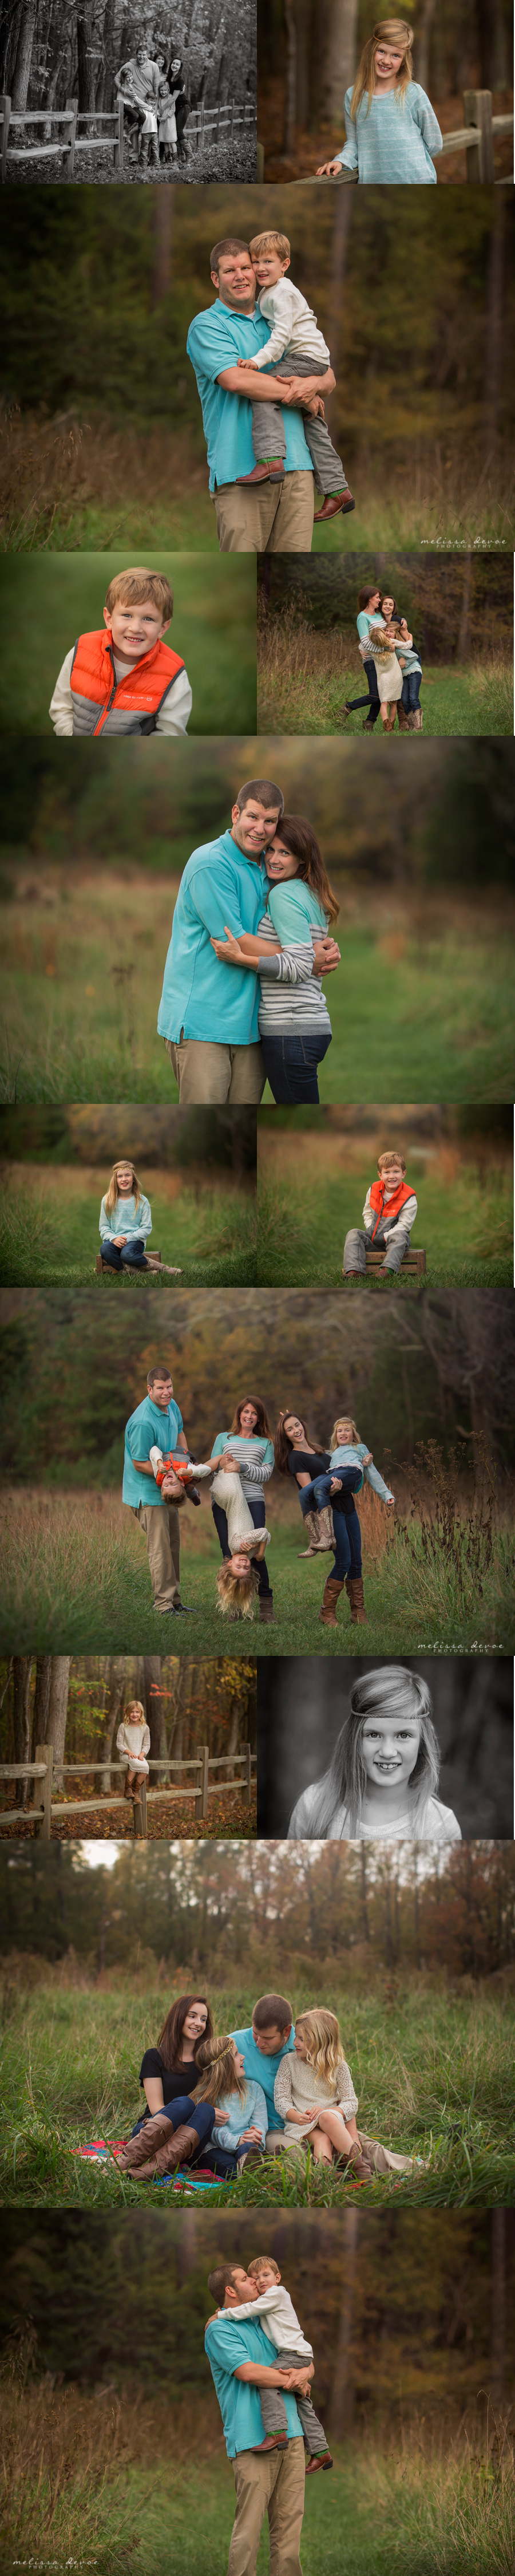 Melissa DeVoe Photography Raleigh Child Family Photographer 1